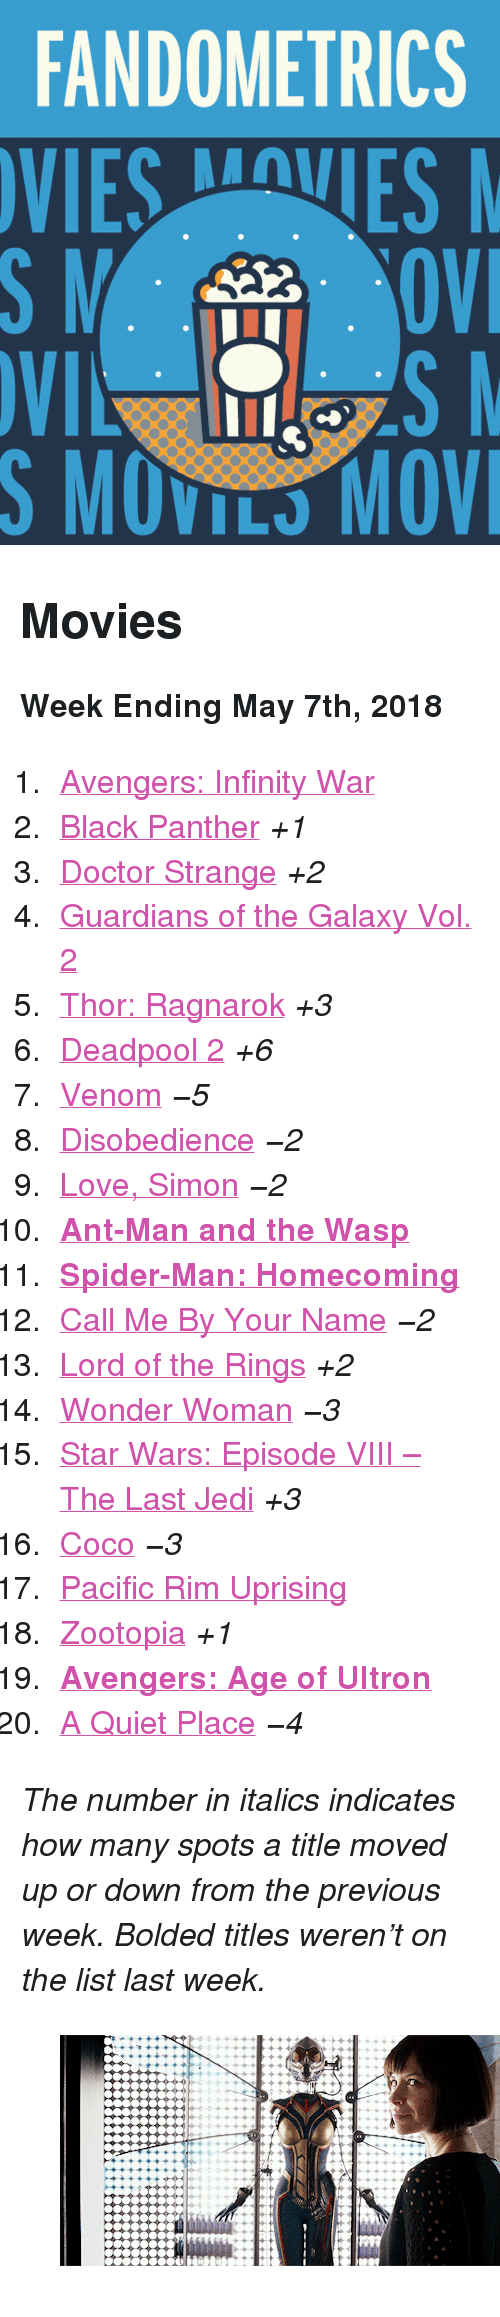 "lotr: FANDOMETRICS  SMOVILS MOV <h2>Movies</h2><p><b>Week Ending May 7th, 2018</b></p><ol><li><a href=""http://www.tumblr.com/search/infinity%20war"">Avengers: Infinity War</a></li>  <li><a href=""http://www.tumblr.com/search/black%20panther"">Black Panther</a> <i>+1</i></li>  <li><a href=""http://www.tumblr.com/search/doctor%20strange"">Doctor Strange</a> <i>+2</i></li>  <li><a href=""http://www.tumblr.com/search/guardians%20of%20the%20galaxy"">Guardians of the Galaxy Vol. 2</a></li>  <li><a href=""http://www.tumblr.com/search/thor%20ragnarok"">Thor: Ragnarok</a> <i>+3</i></li>  <li><a href=""http://www.tumblr.com/search/deadpool"">Deadpool 2</a> <i>+6</i></li>  <li><a href=""http://www.tumblr.com/search/venom"">Venom</a> <i><i>−5</i></i></li>  <li><a href=""http://www.tumblr.com/search/disobedience"">Disobedience</a> <i><i>−2</i></i></li>  <li><a href=""http://www.tumblr.com/search/love%20simon"">Love, Simon</a> <i><i>−2</i></i></li>  <li><a href=""http://www.tumblr.com/search/ant%20man""><b>Ant-Man and the Wasp</b></a></li>  <li><a href=""http://www.tumblr.com/search/spiderman%20homecoming""><b>Spider-Man: Homecoming</b></a></li>  <li><a href=""http://www.tumblr.com/search/call%20me%20by%20your%20name"">Call Me By Your Name</a> <i><i>−2</i></i></li>  <li><a href=""http://www.tumblr.com/search/lotr"">Lord of the Rings</a> <i>+2</i></li>  <li><a href=""http://www.tumblr.com/search/wonder%20woman"">Wonder Woman</a> <i><i>−3</i></i></li>  <li><a href=""http://www.tumblr.com/search/the%20last%20jedi"">Star Wars: Episode VIII – The Last Jedi</a> <i>+3</i></li>  <li><a href=""http://www.tumblr.com/search/coco"">Coco</a> <i><i>−3</i></i></li>  <li><a href=""http://www.tumblr.com/search/pacific%20rim"">Pacific Rim Uprising</a></li>  <li><a href=""http://www.tumblr.com/search/zootopia"">Zootopia</a> <i>+1</i></li>  <li><a href=""http://www.tumblr.com/search/age%20of%20ultron""><b>Avengers: Age of Ultron</b></a></li>  <li><a href=""http://www.tumblr.com/search/a%20quiet%20place"">A Quiet Place</a> <i><i>−4</i></i></li></ol><p><i>The number in italics indicates how many spots a title moved up or down from the previous week. Bolded titles weren't on the list last week.</i></p><figure class=""tmblr-full"" data-orig-height=""151"" data-orig-width=""268"" data-tumblr-attribution=""comicbookfilms:6cMY4FYbTPoP2qDLiEFeig:ZskSek2XTa2sS""><img src=""https://78.media.tumblr.com/ae86024af96e3eb7bbda9696754ce216/tumblr_p7vbra3M9k1uuxzsno1_500.gif"" data-orig-height=""151"" data-orig-width=""268""/></figure>"